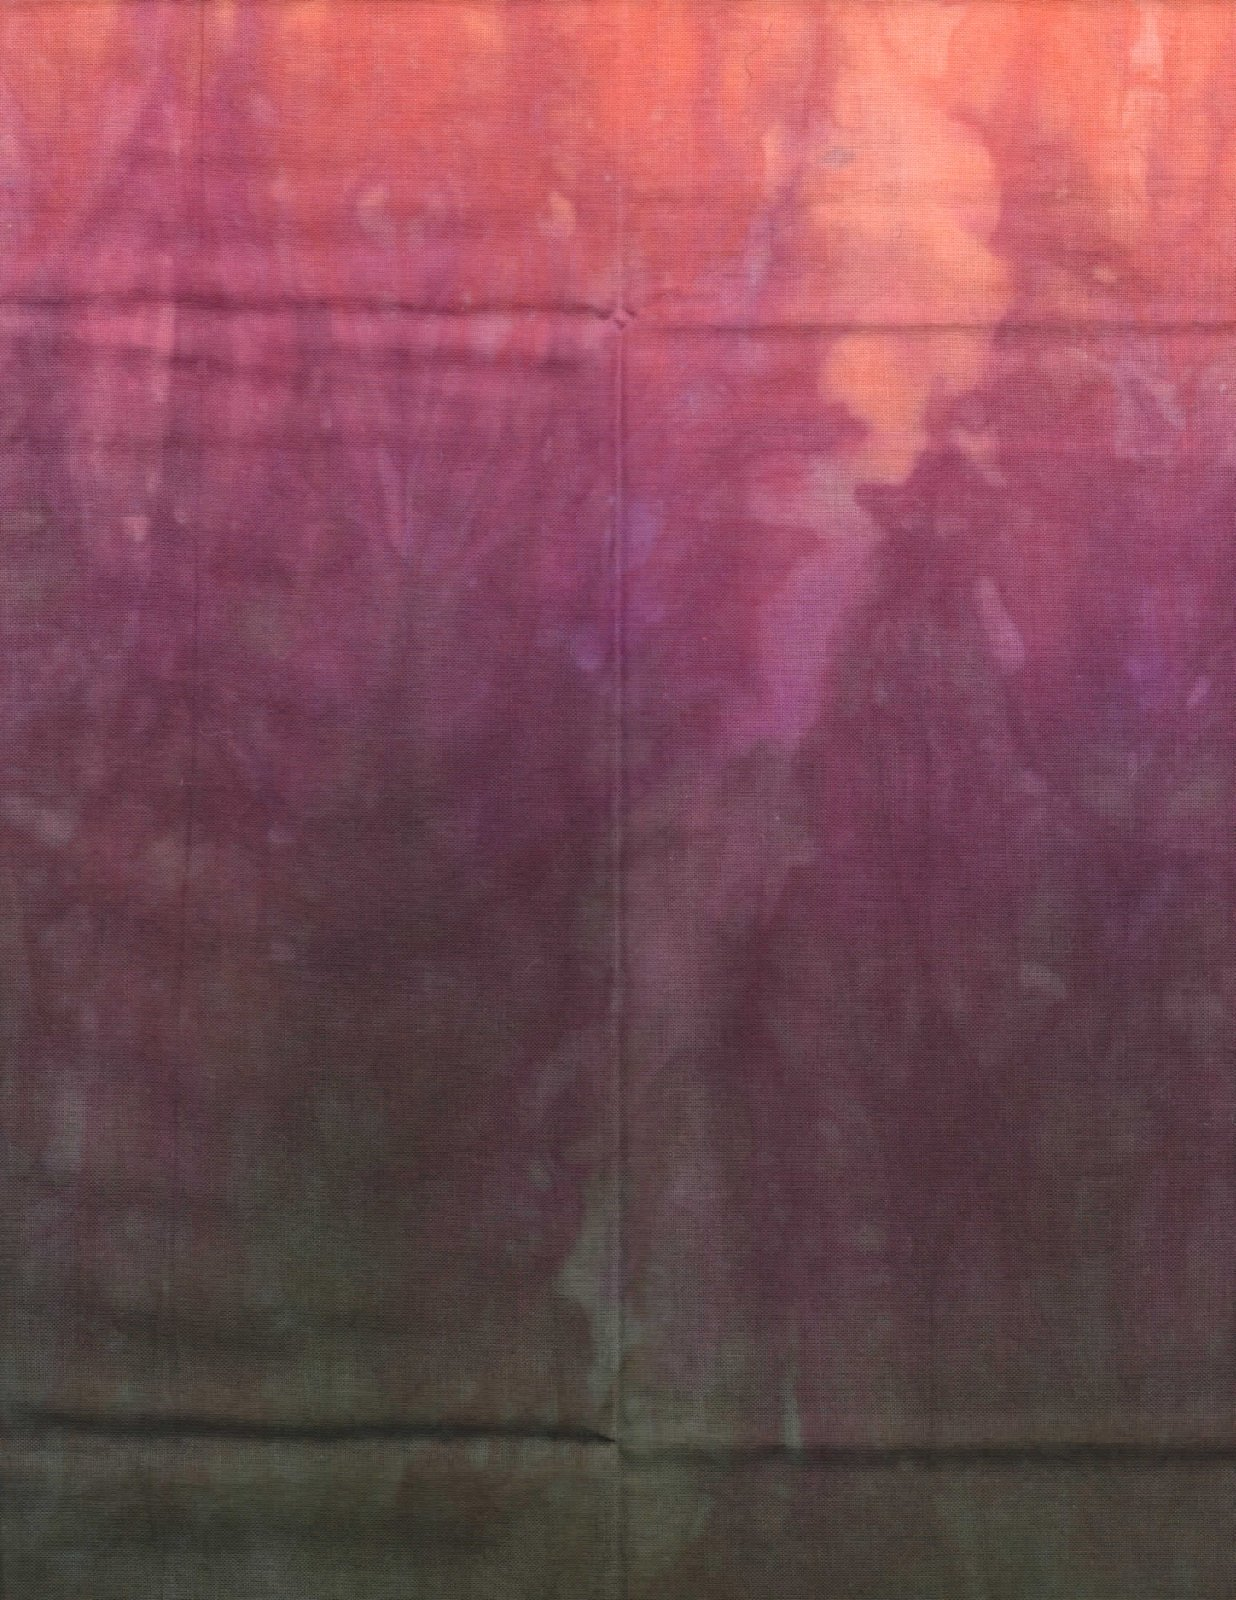 Thistles Hand-Dyed Organdy FQ